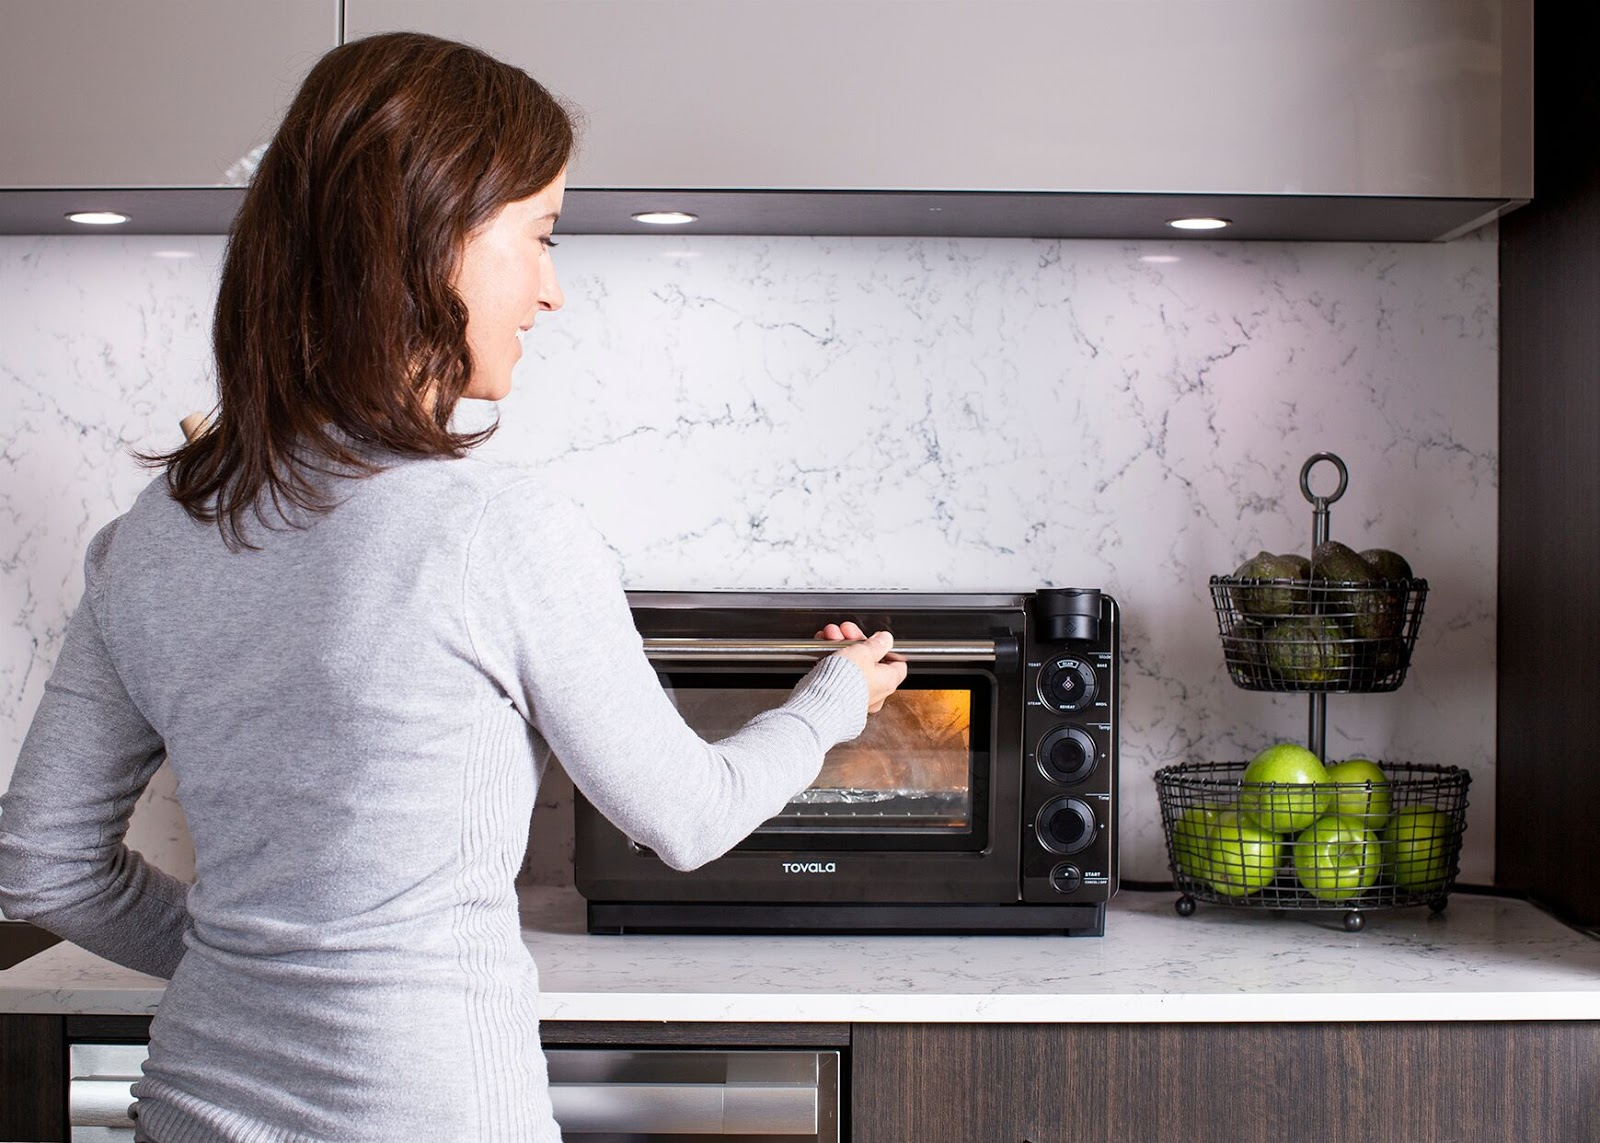 Tiny house appliances: A woman uses the Tovala Steam Oven